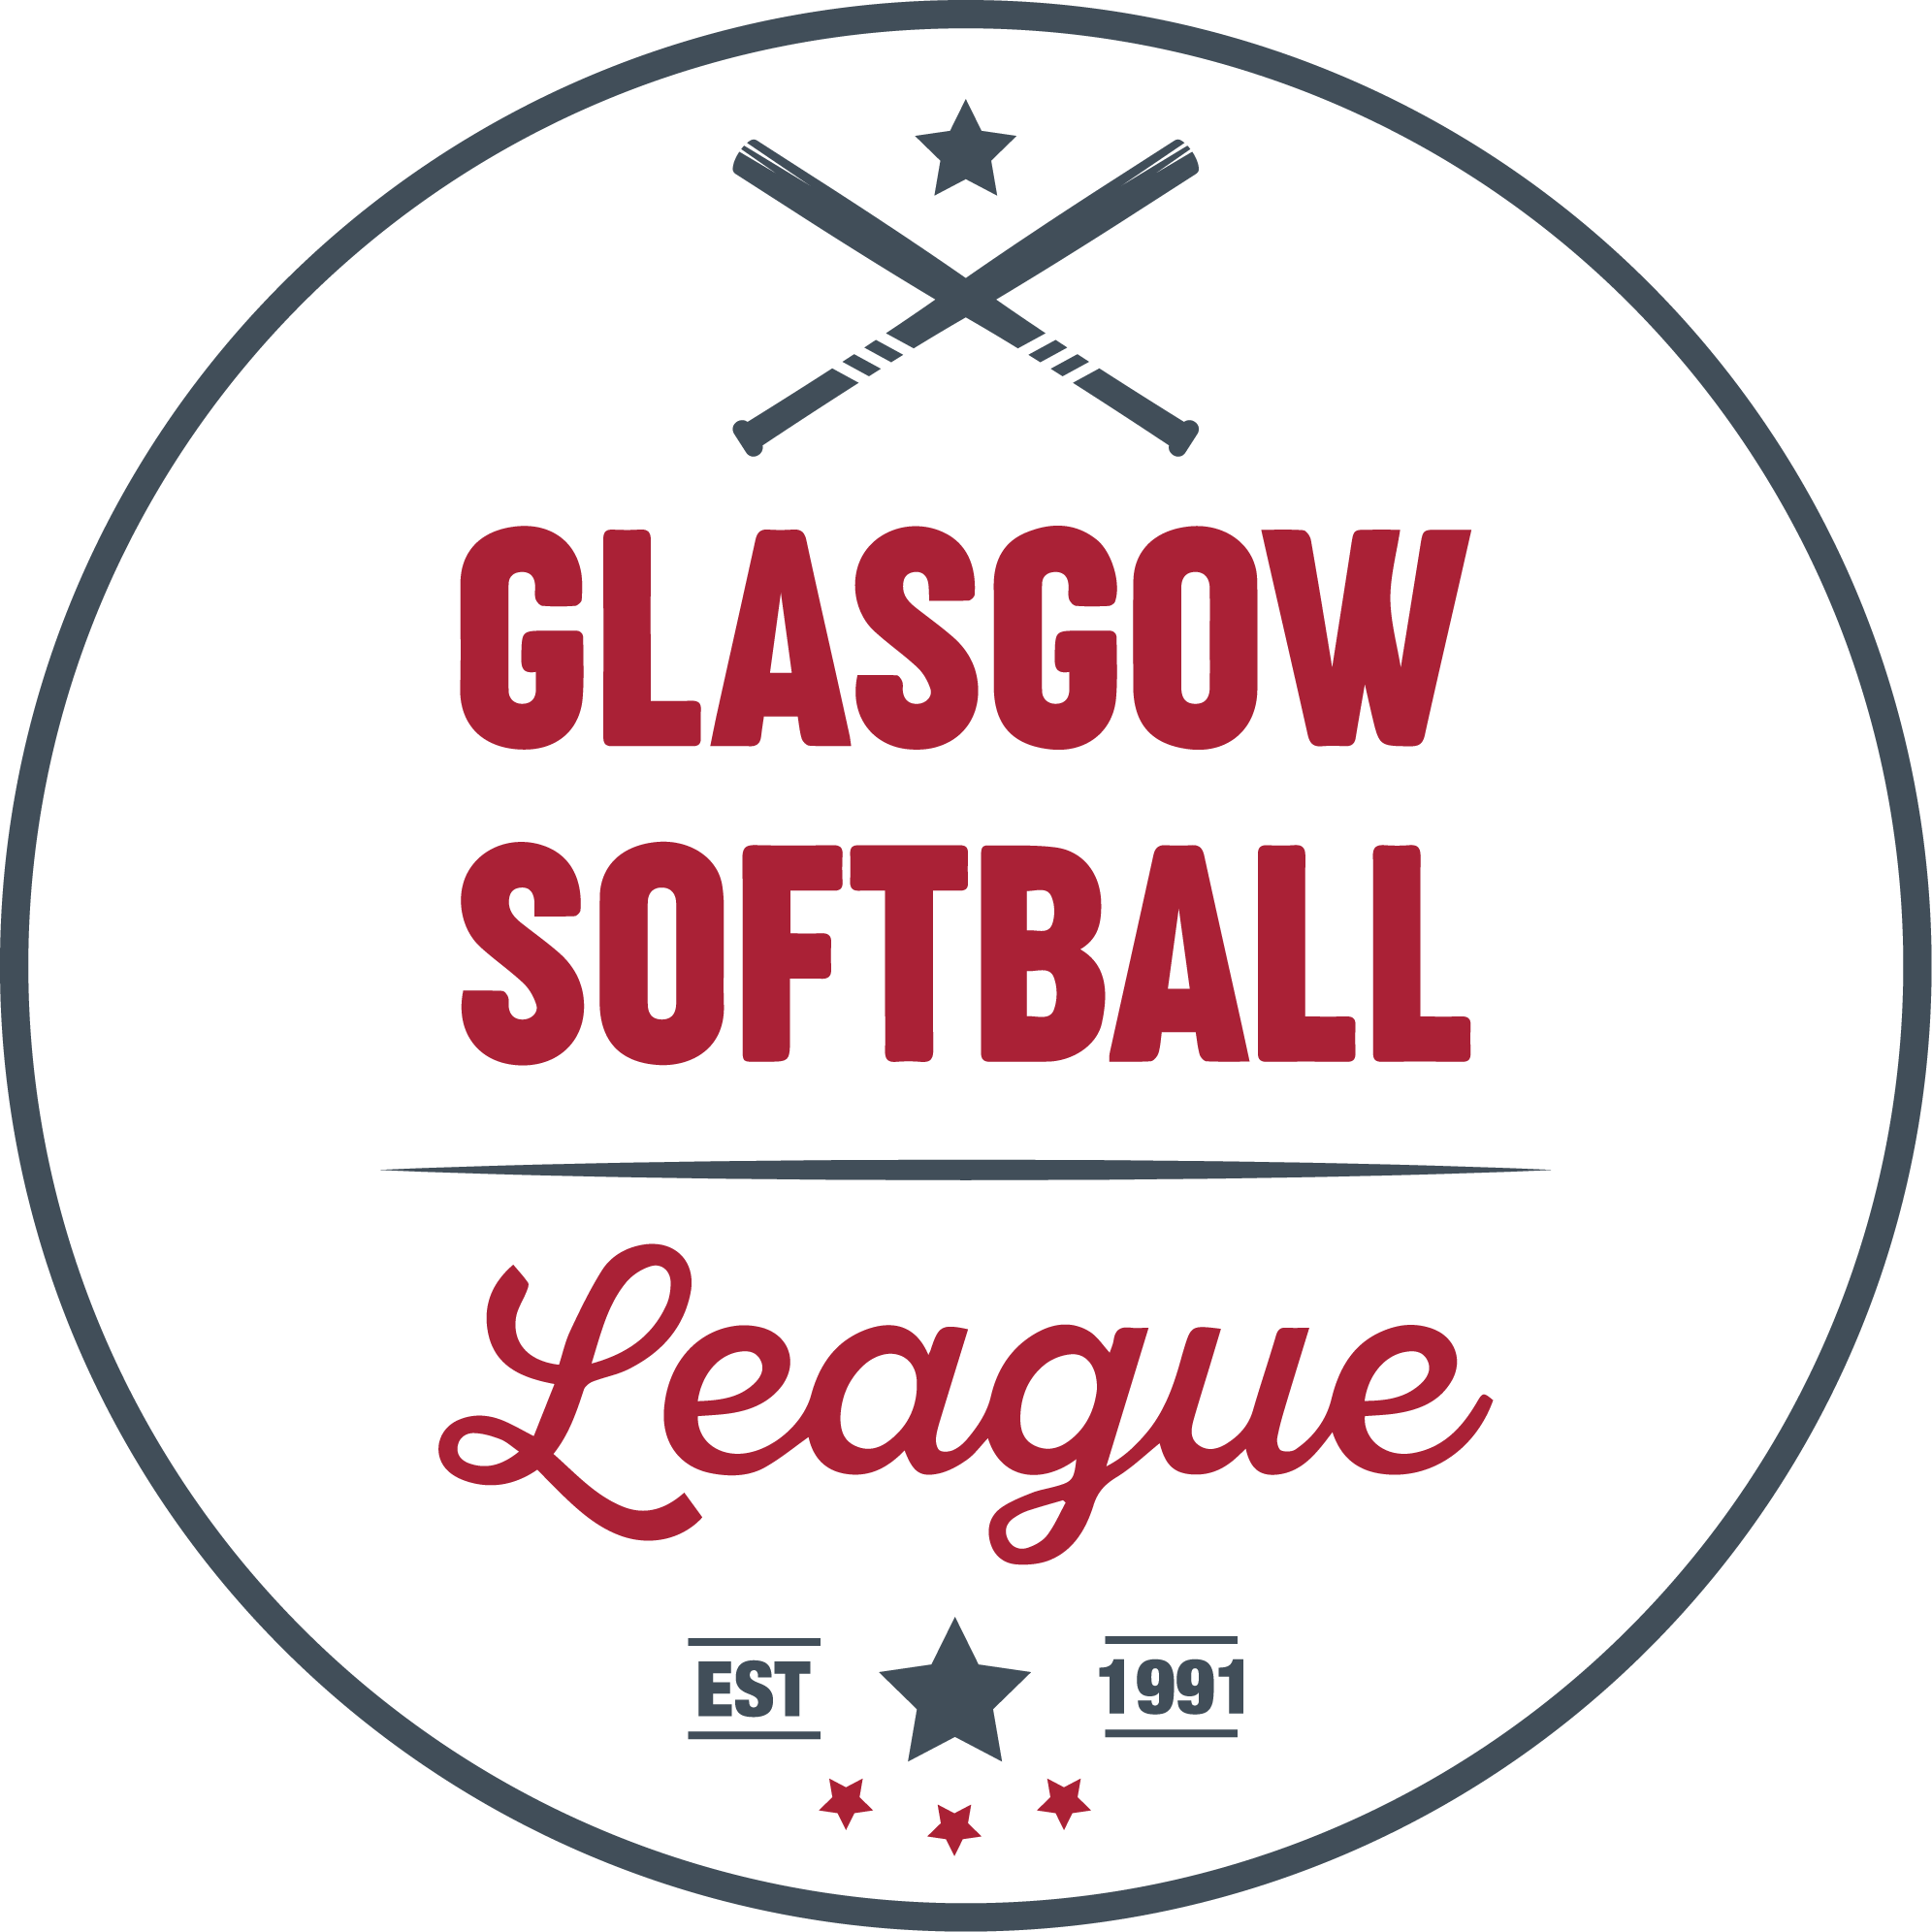 Glasgow Softball League